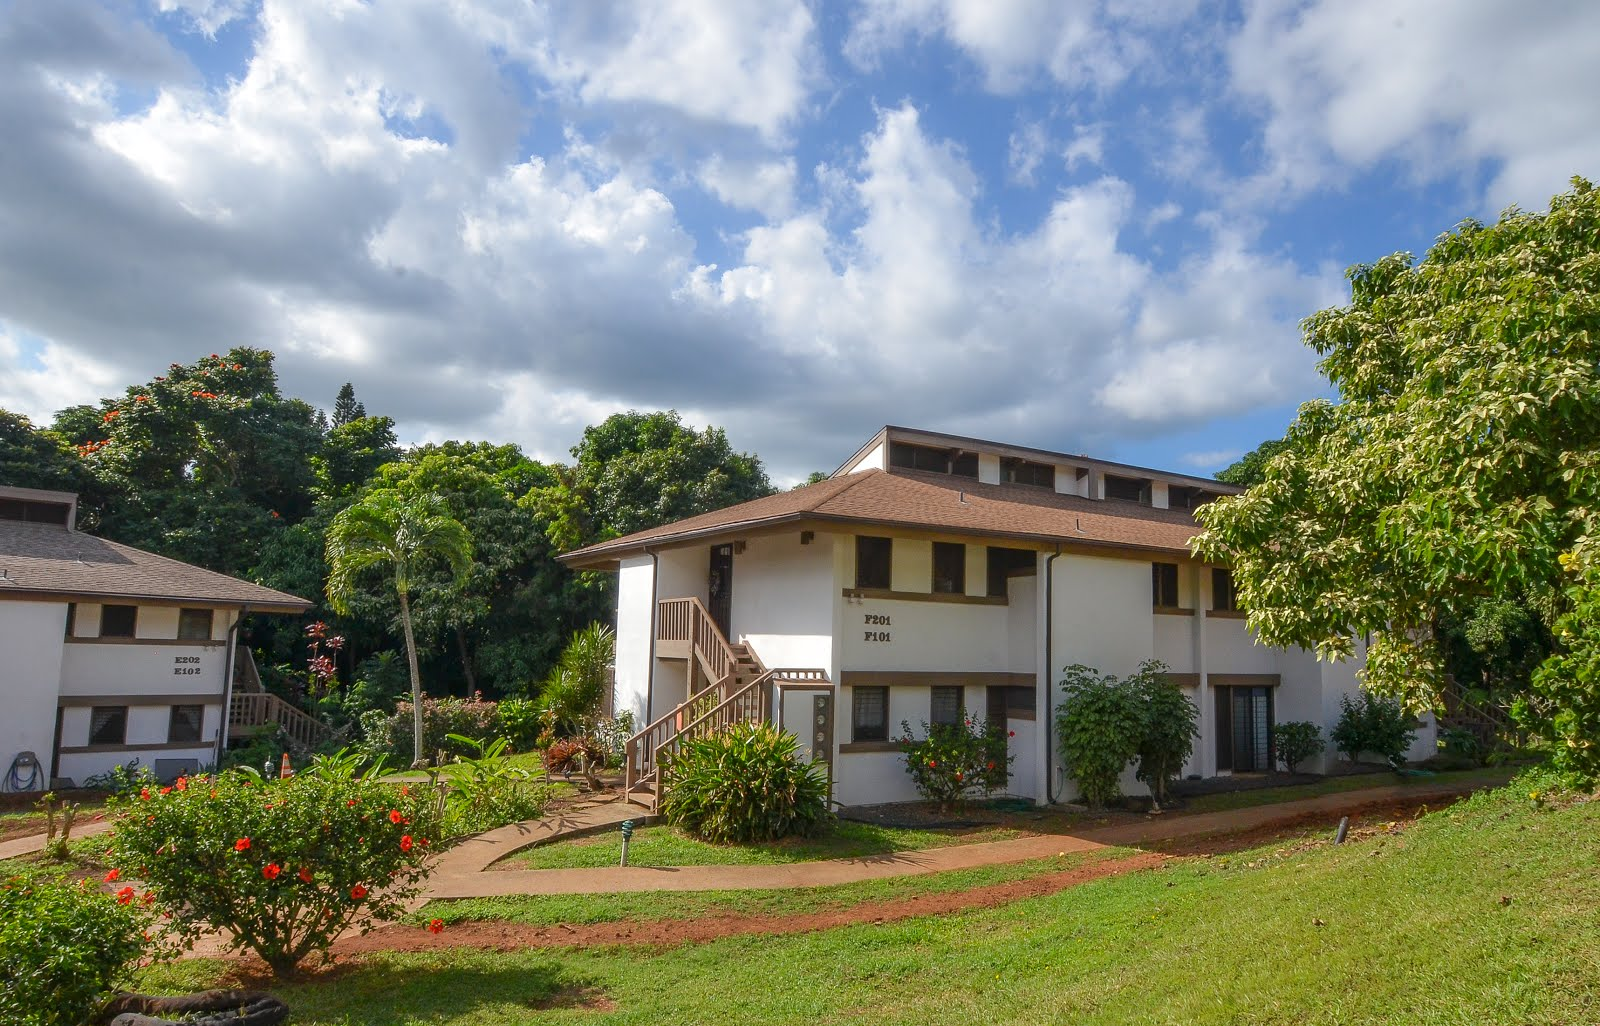 kauai real estate for sale 2 bedroom condos for sale